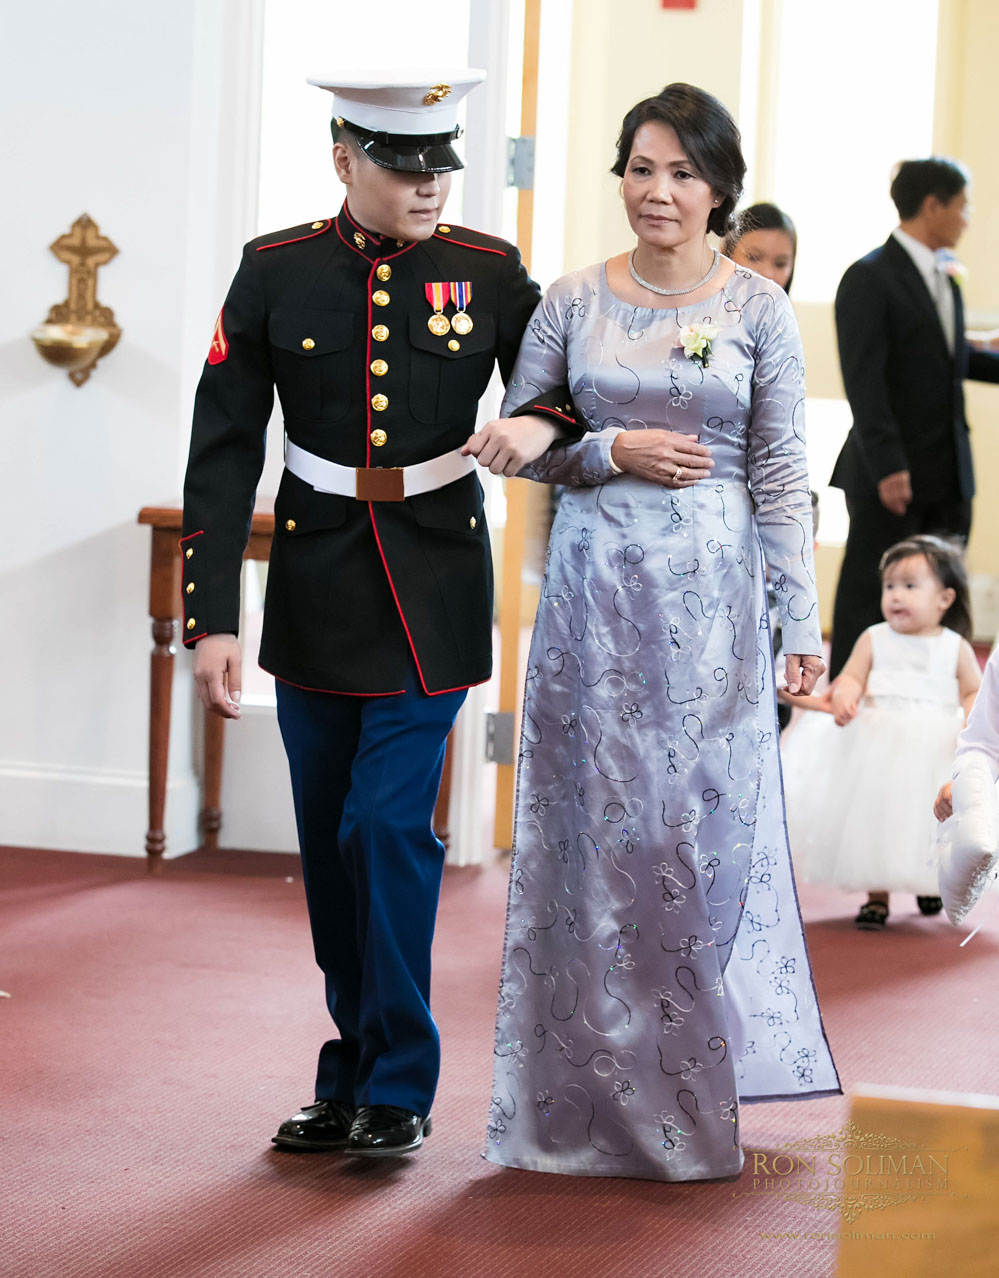 OUR LADY OF VIETNAM WEDDING